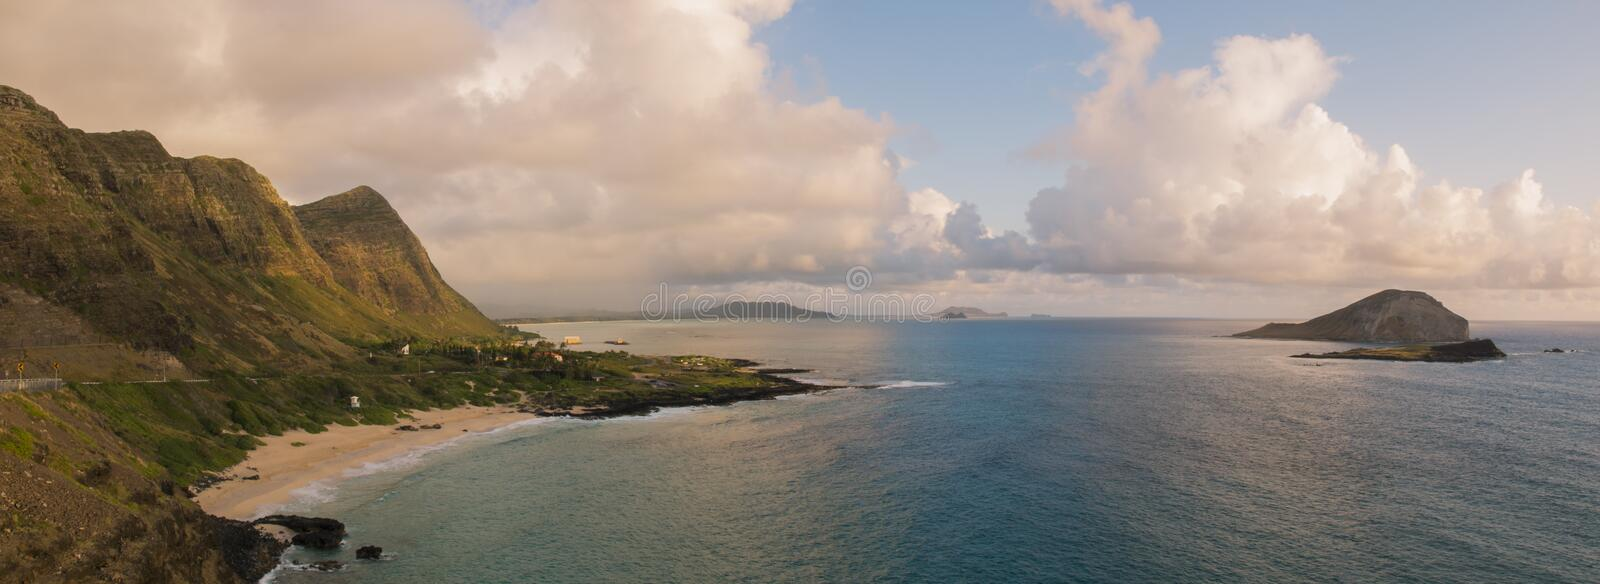 Makapu'u Lookout. Once used as a bathing area by princesses and queens, Makapu'u Beach is now enjoyed by thousands of Oahu locals and tourists royalty free stock images